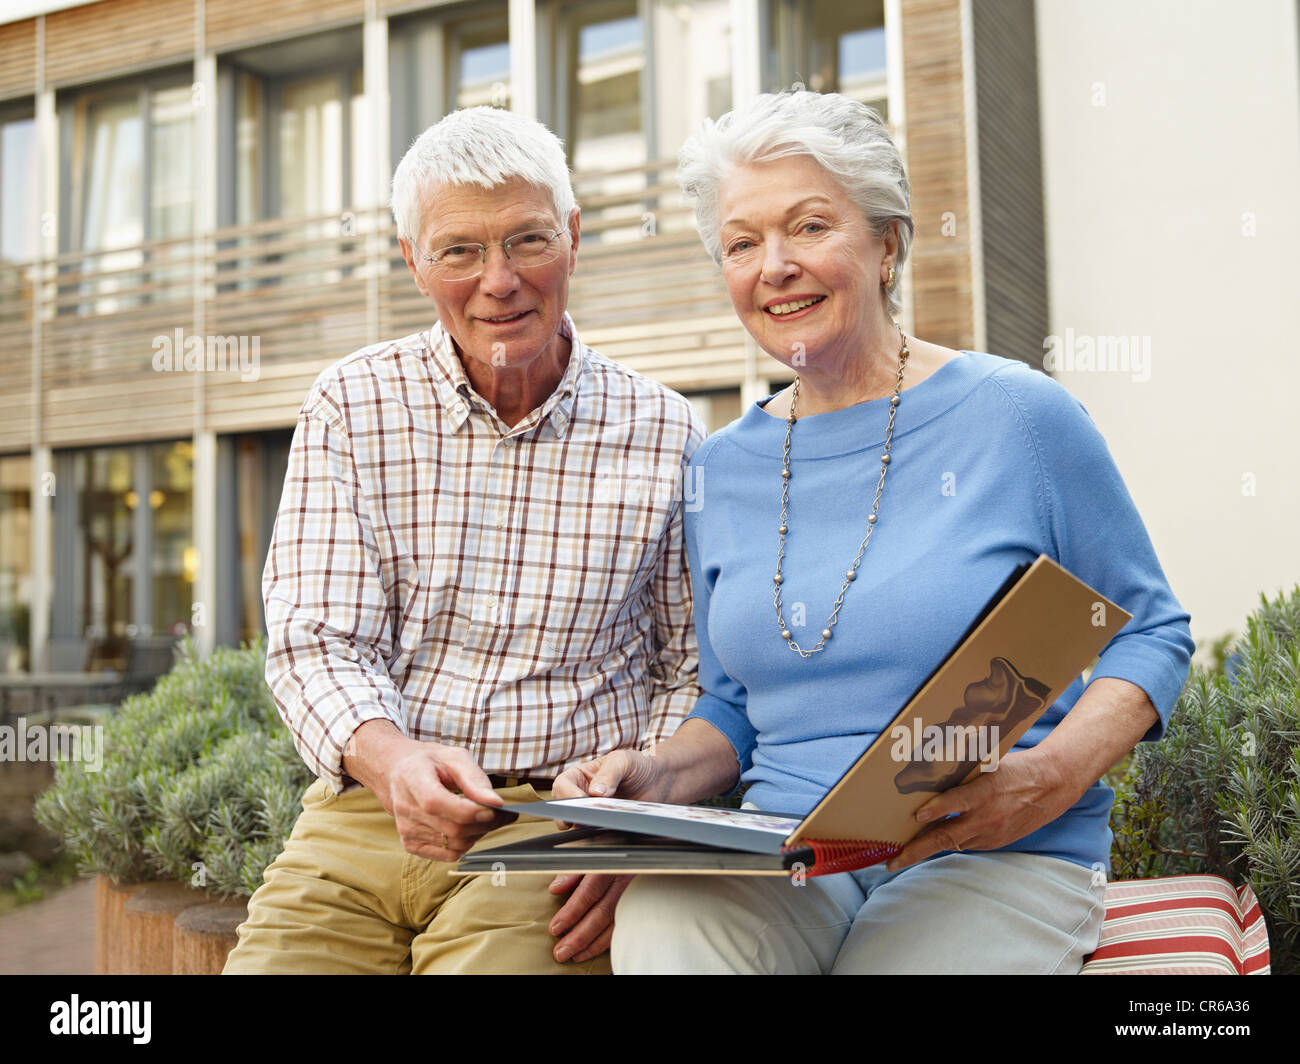 Germany, Cologne, Senior couple with photo album in front of nursing home, portrait - Stock Image